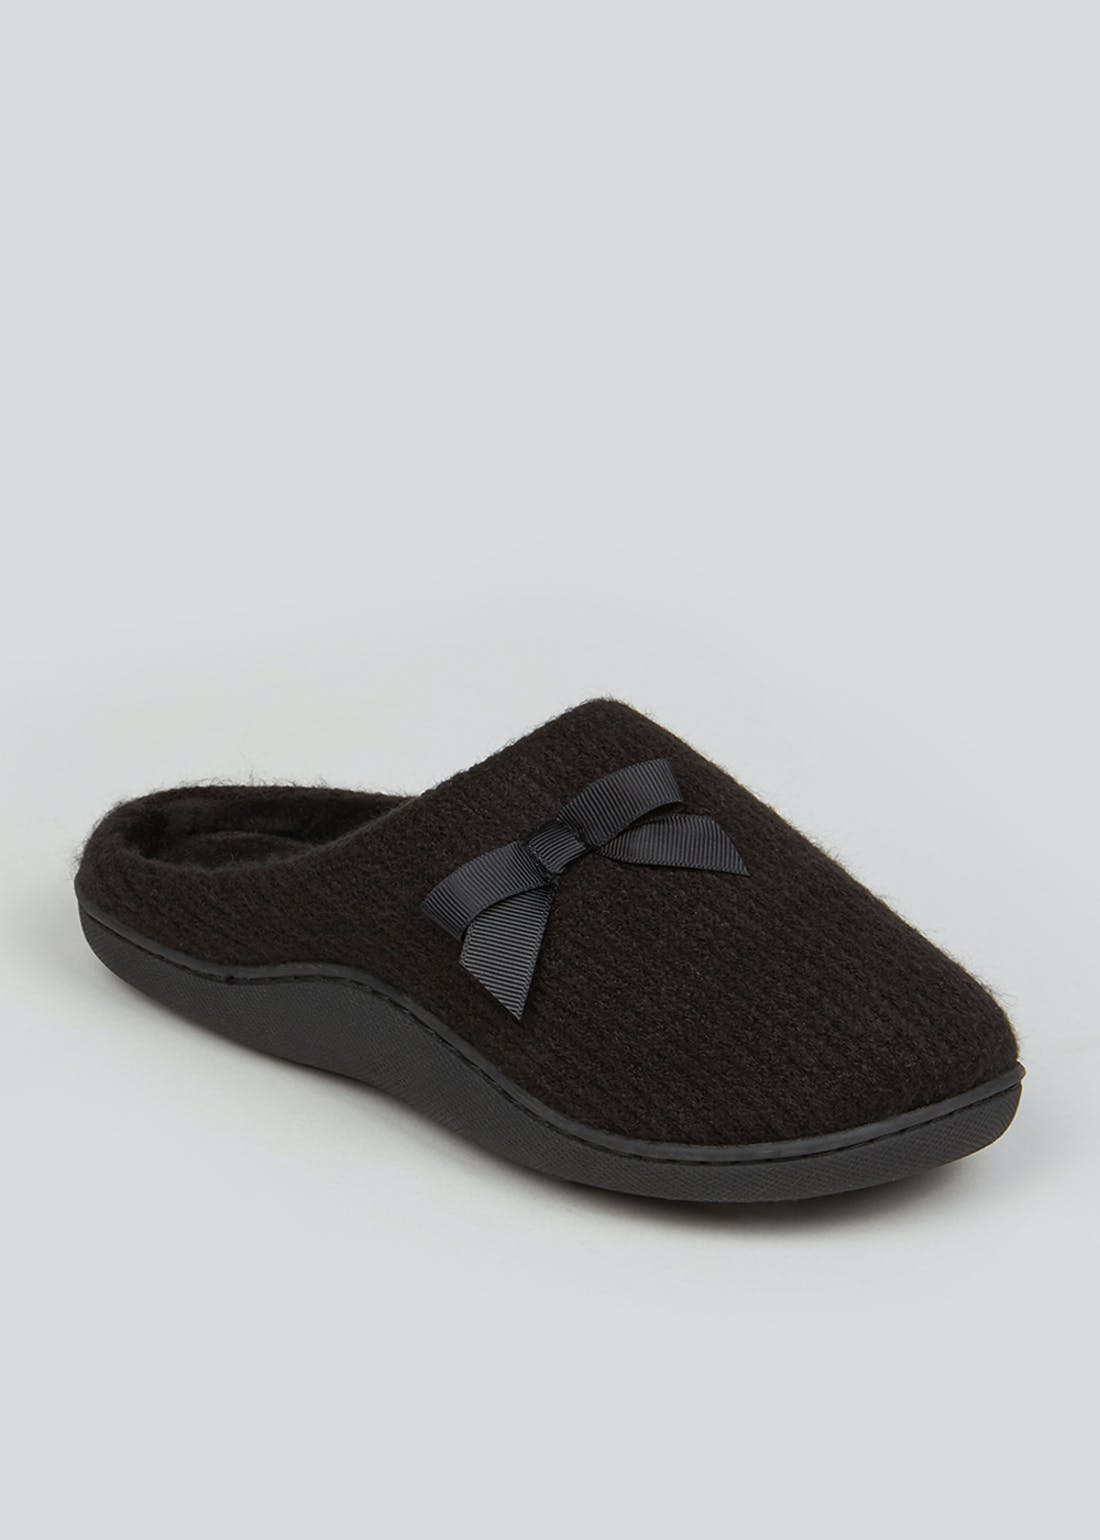 Black Hidden Support Mule Slippers